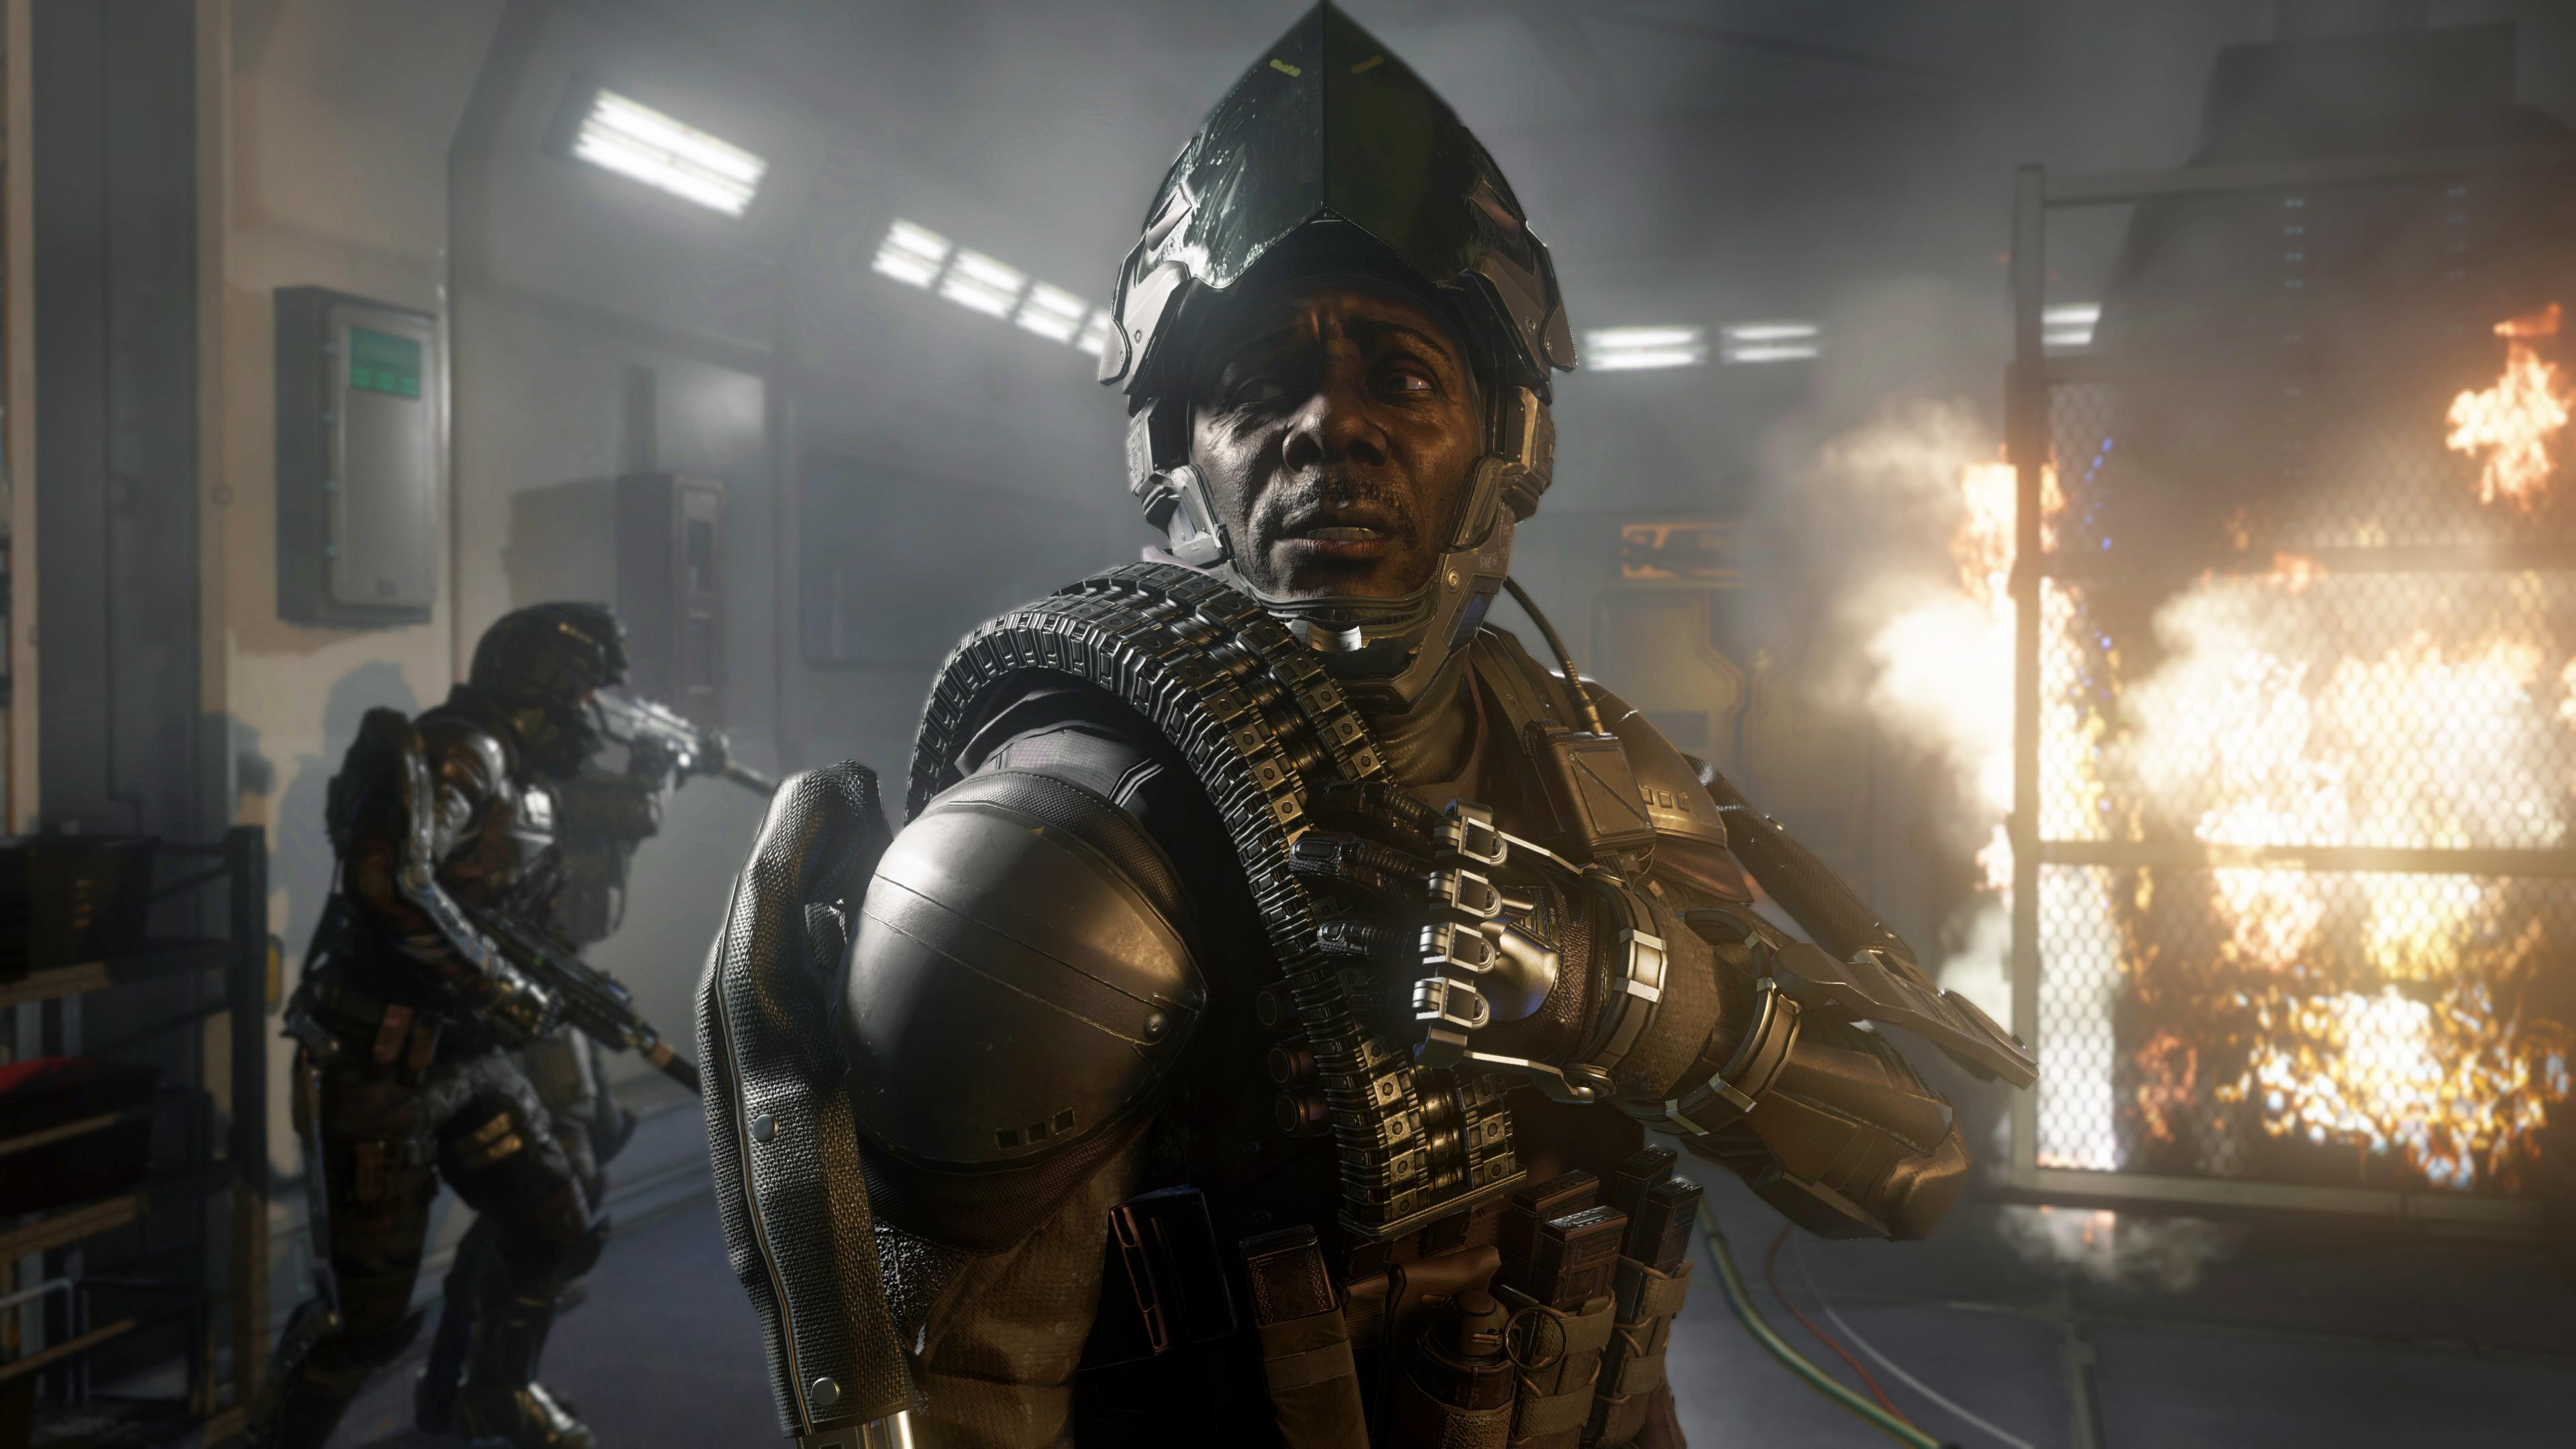 Gaming Deals: Get Call of Duty: Advanced Warfare for $40 and more